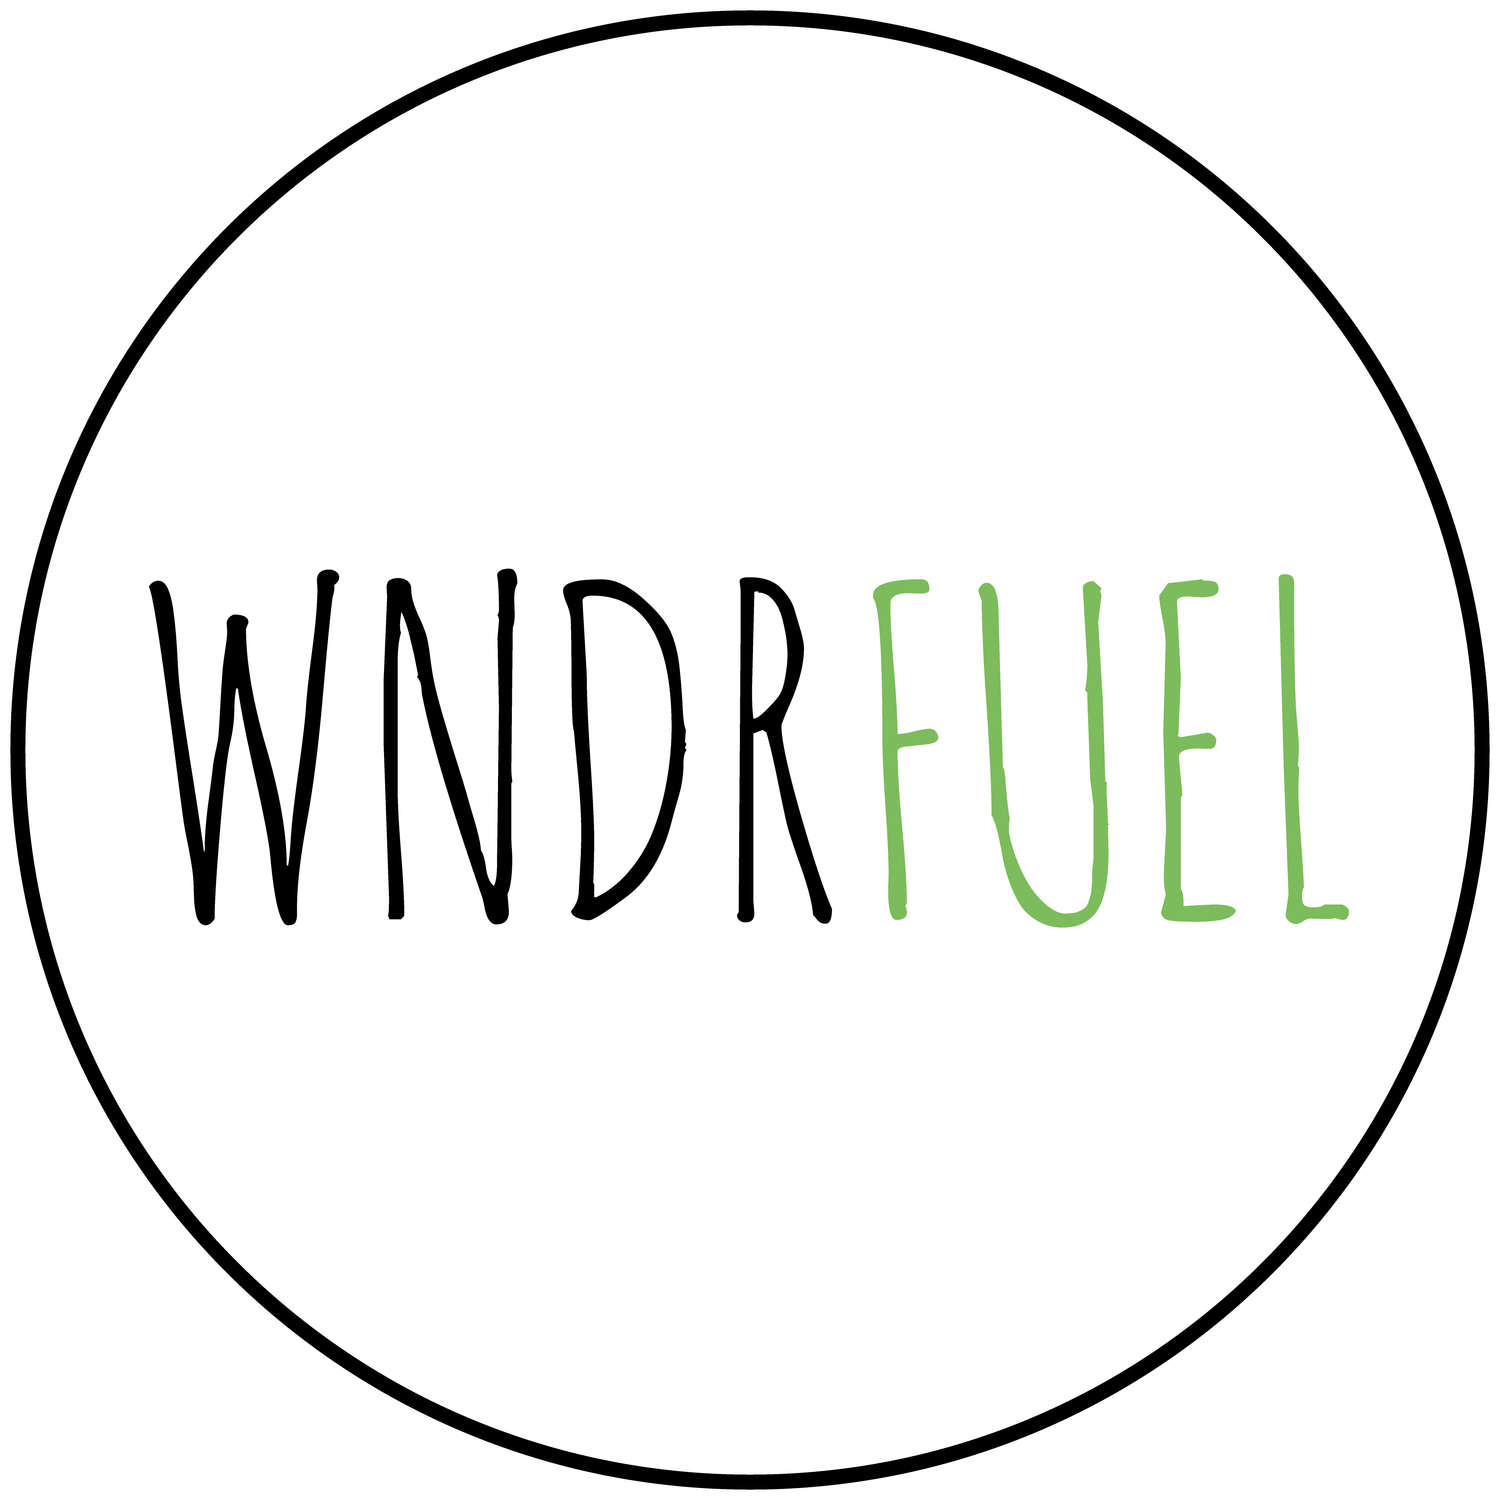 WNDRFUEL - Coworking Space und Speciality Coffee in Köln